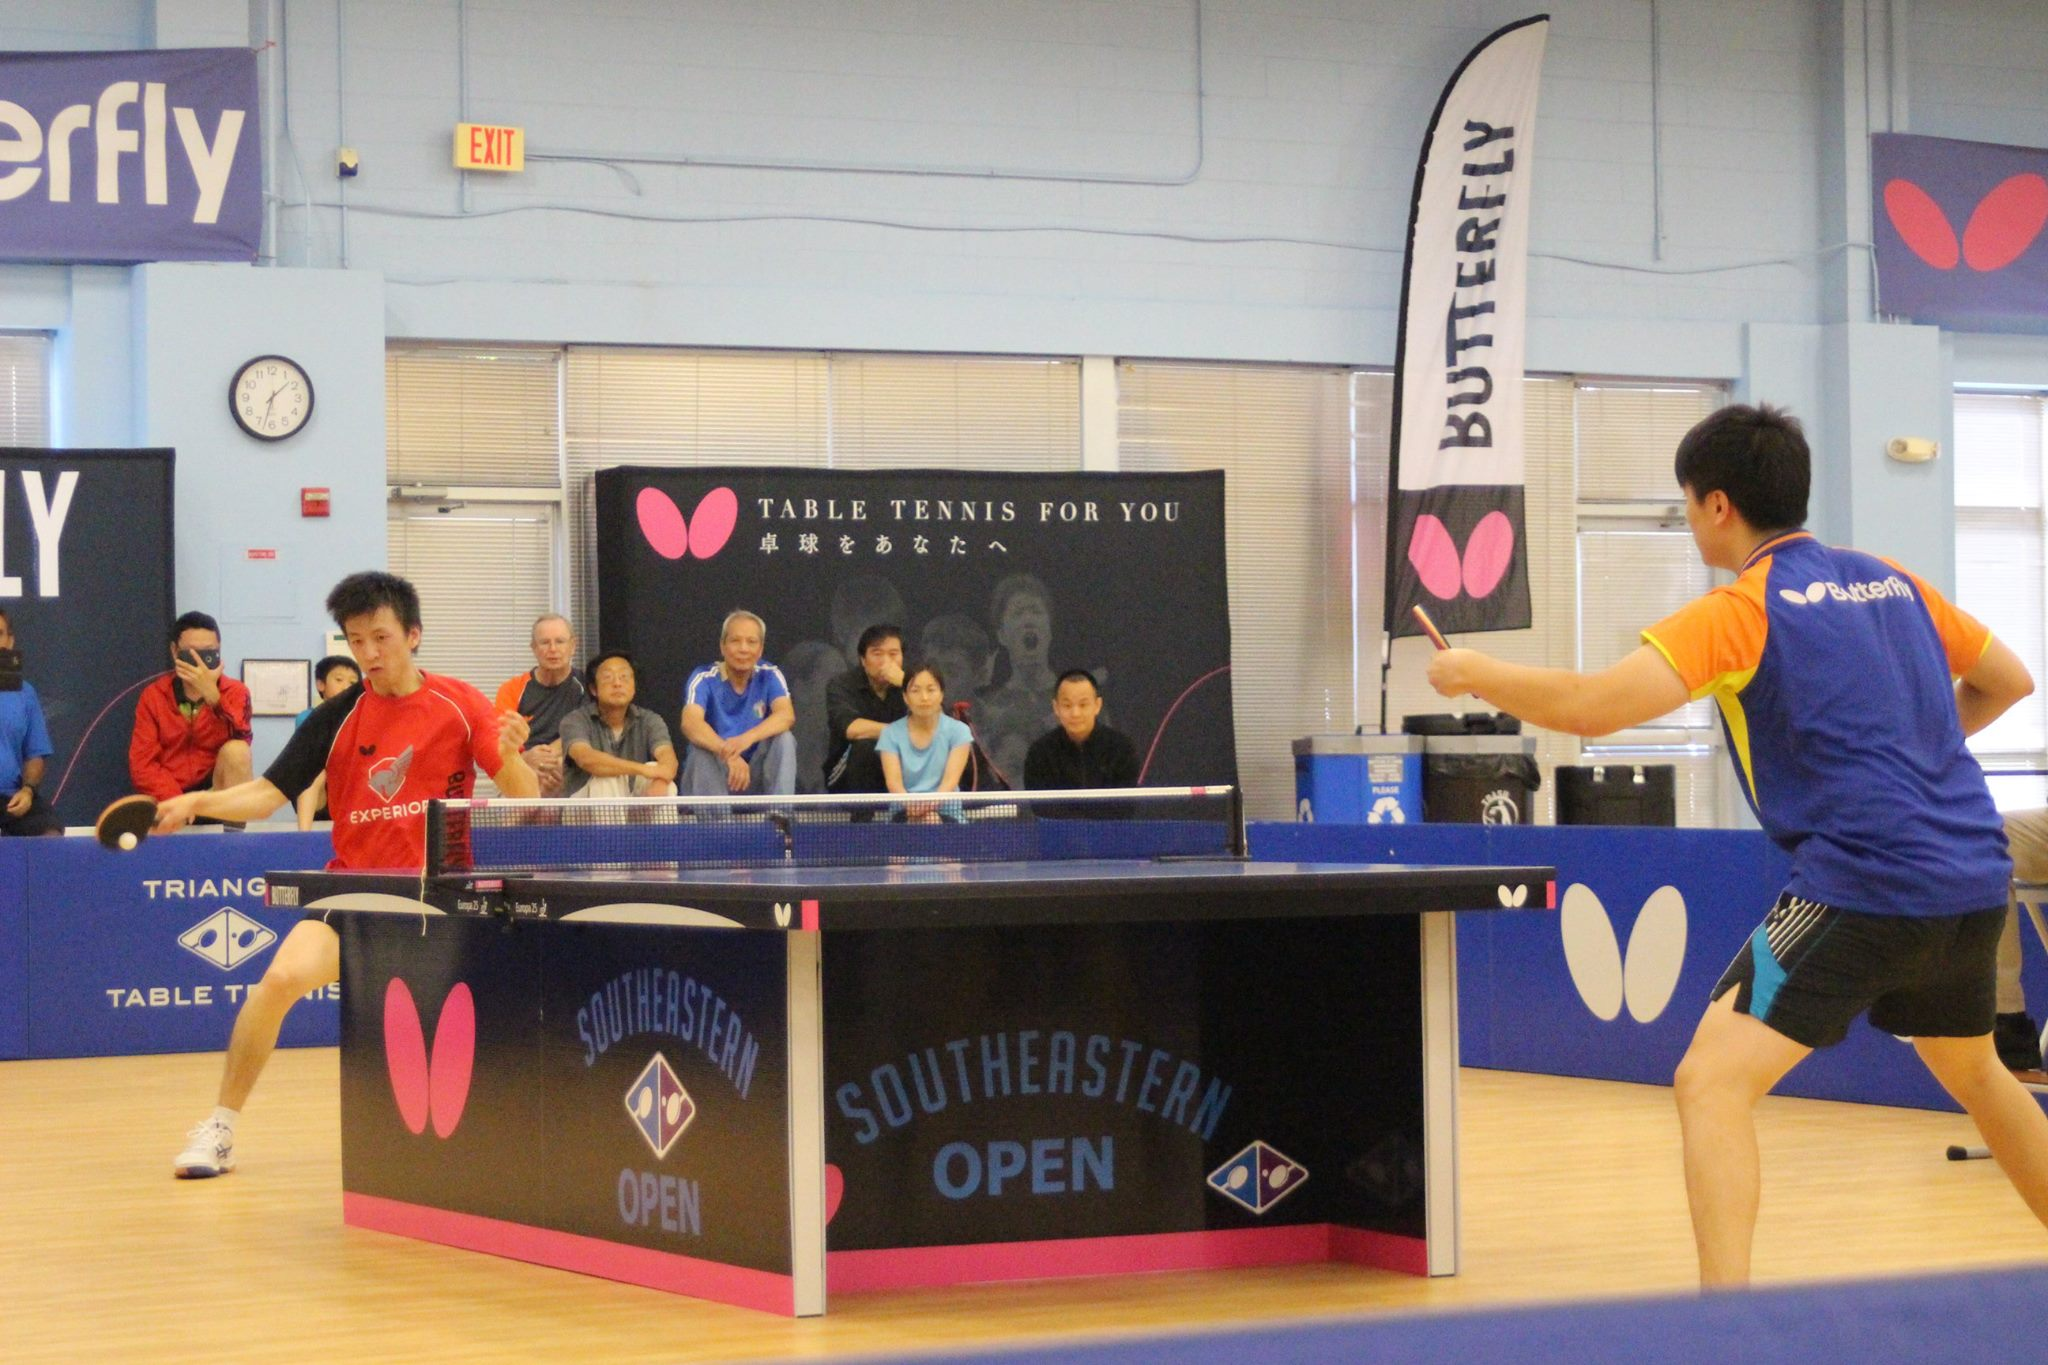 2018 Butterfly Southeastern Open Giant Round Robin